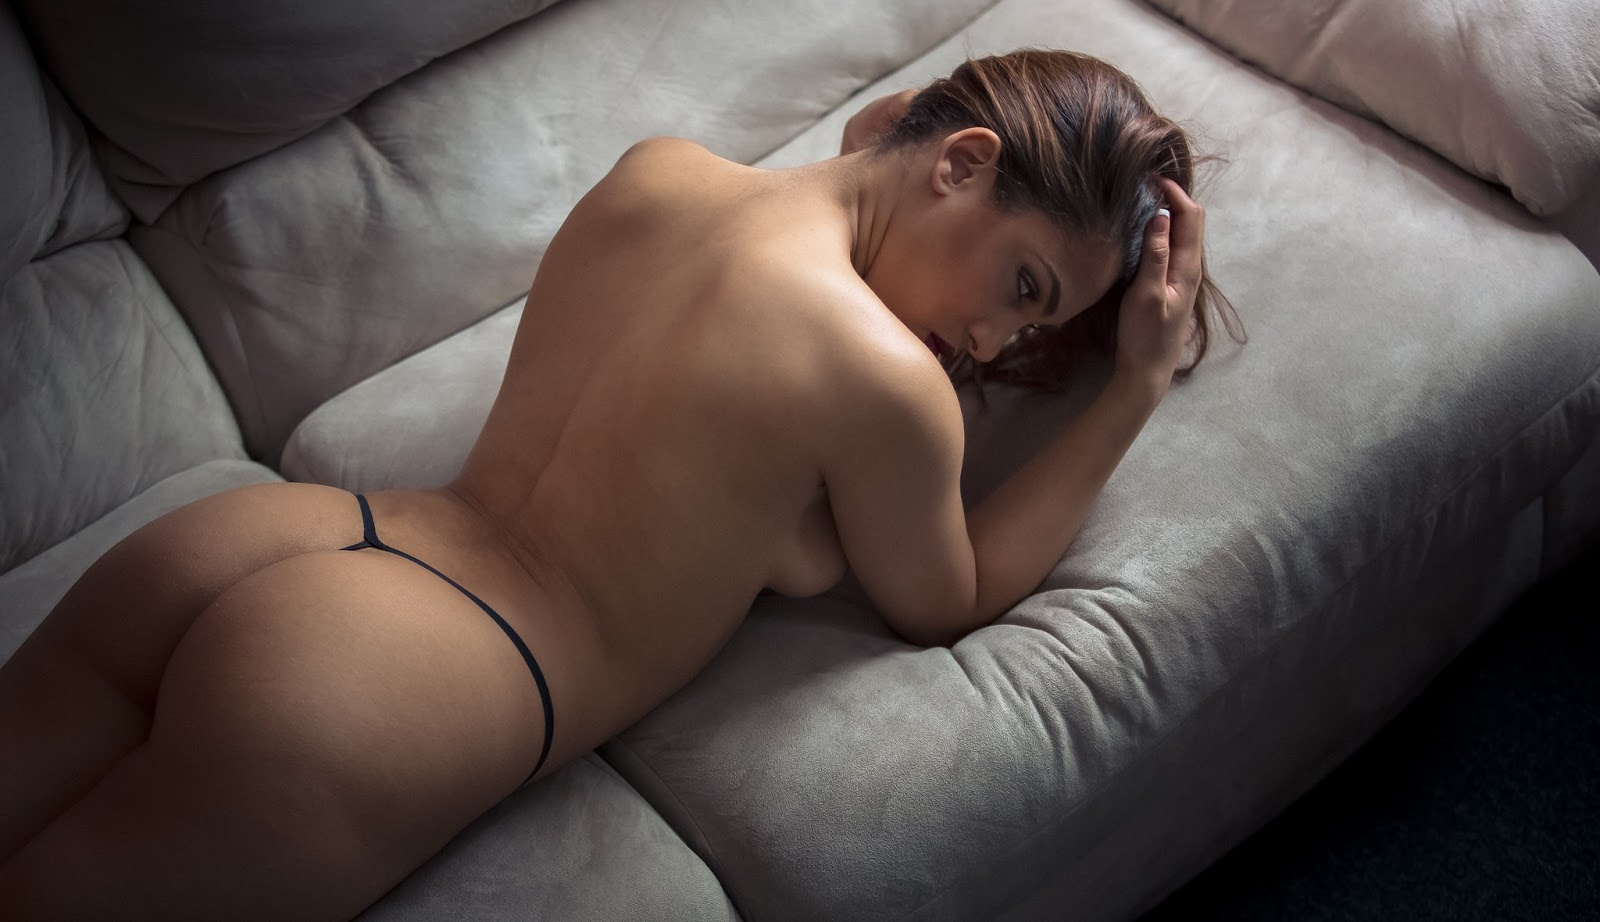 Sexy Pics - Sexy babes with sexy ass